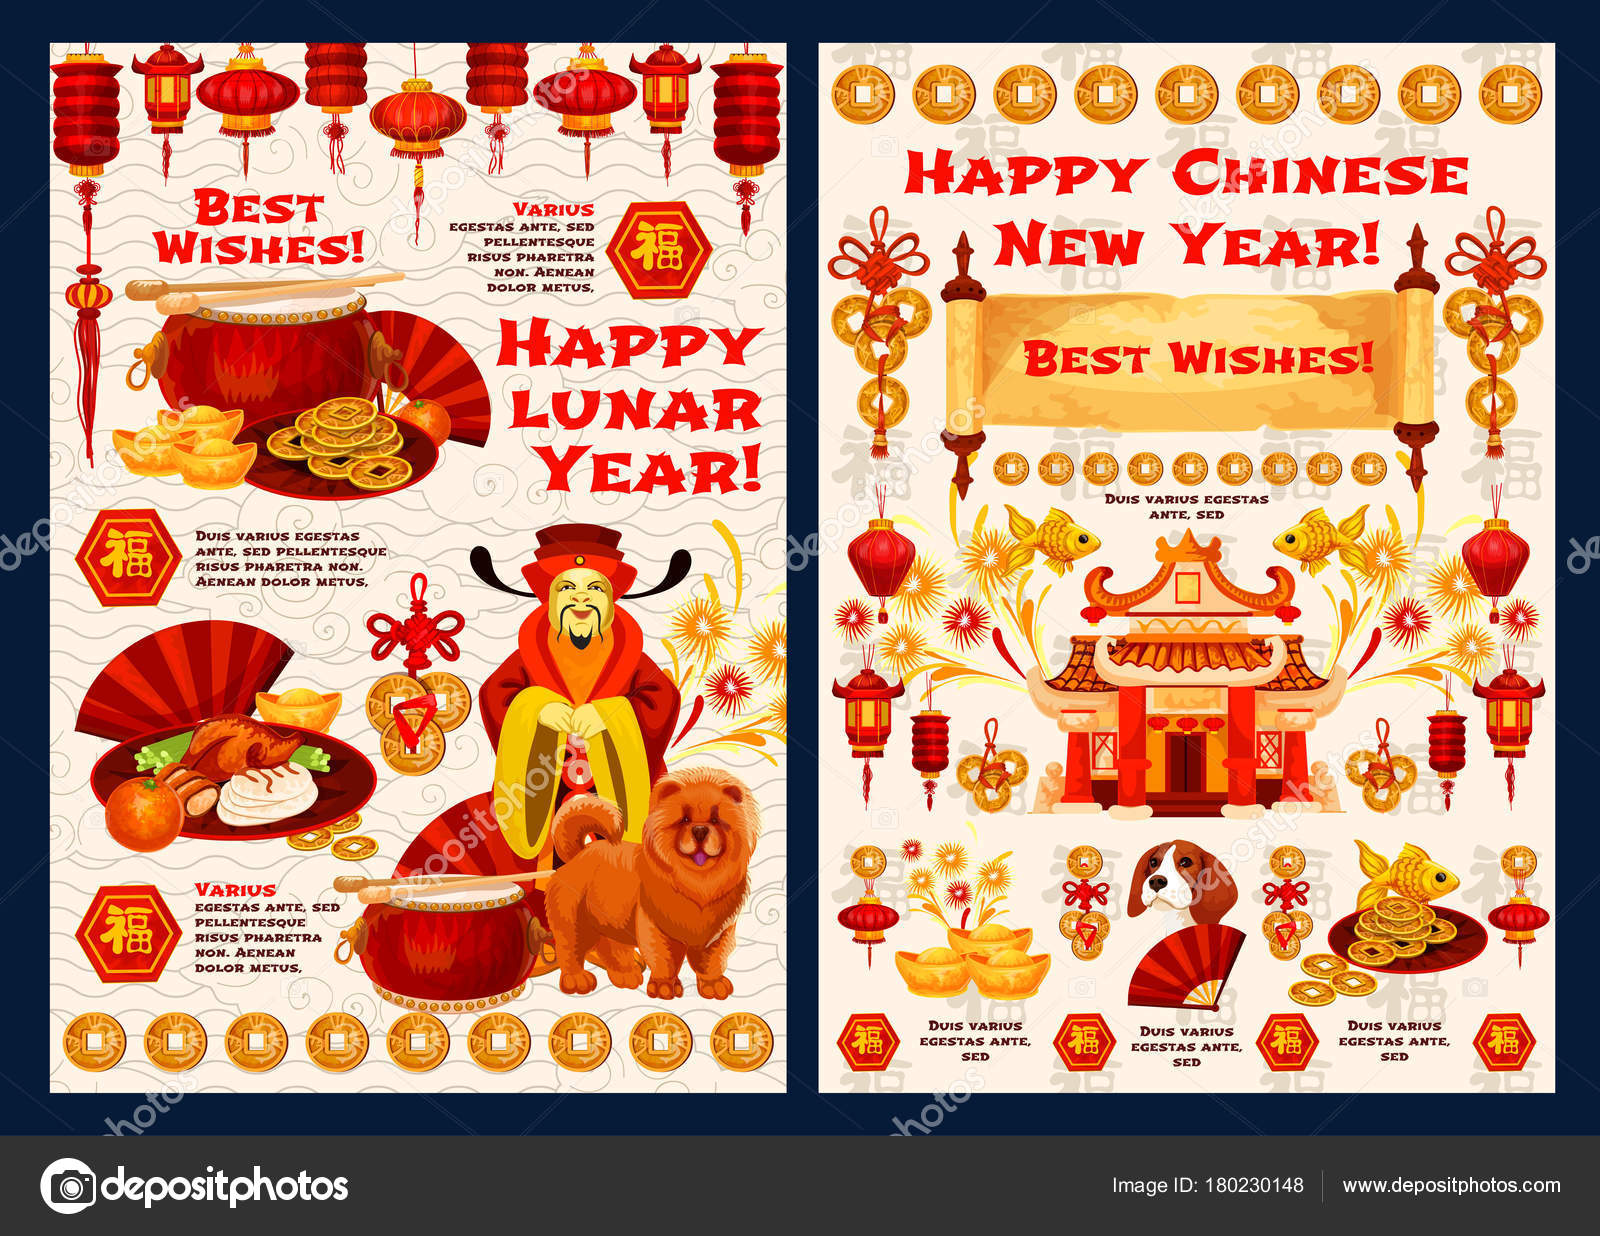 happy chinese new year wishes for 2018 yellow dog lunar year celebration vector greeting card of traditional decorations and golden symbols of red lanterns